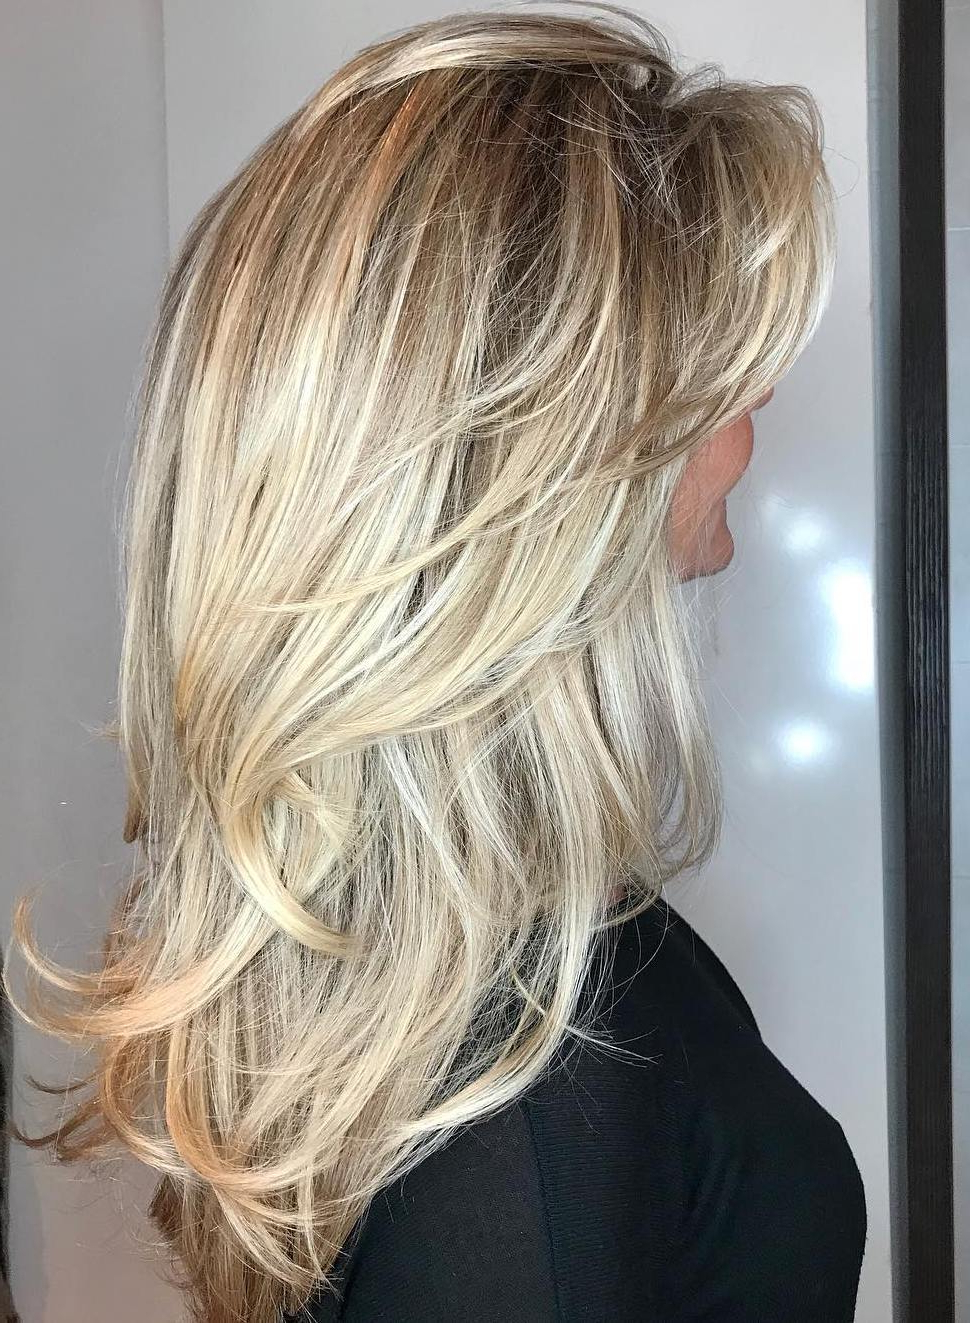 50 Cute Long Layered Haircuts With Bangs 2019 In 2019 Full Tousled Layers Hairstyles (View 3 of 20)